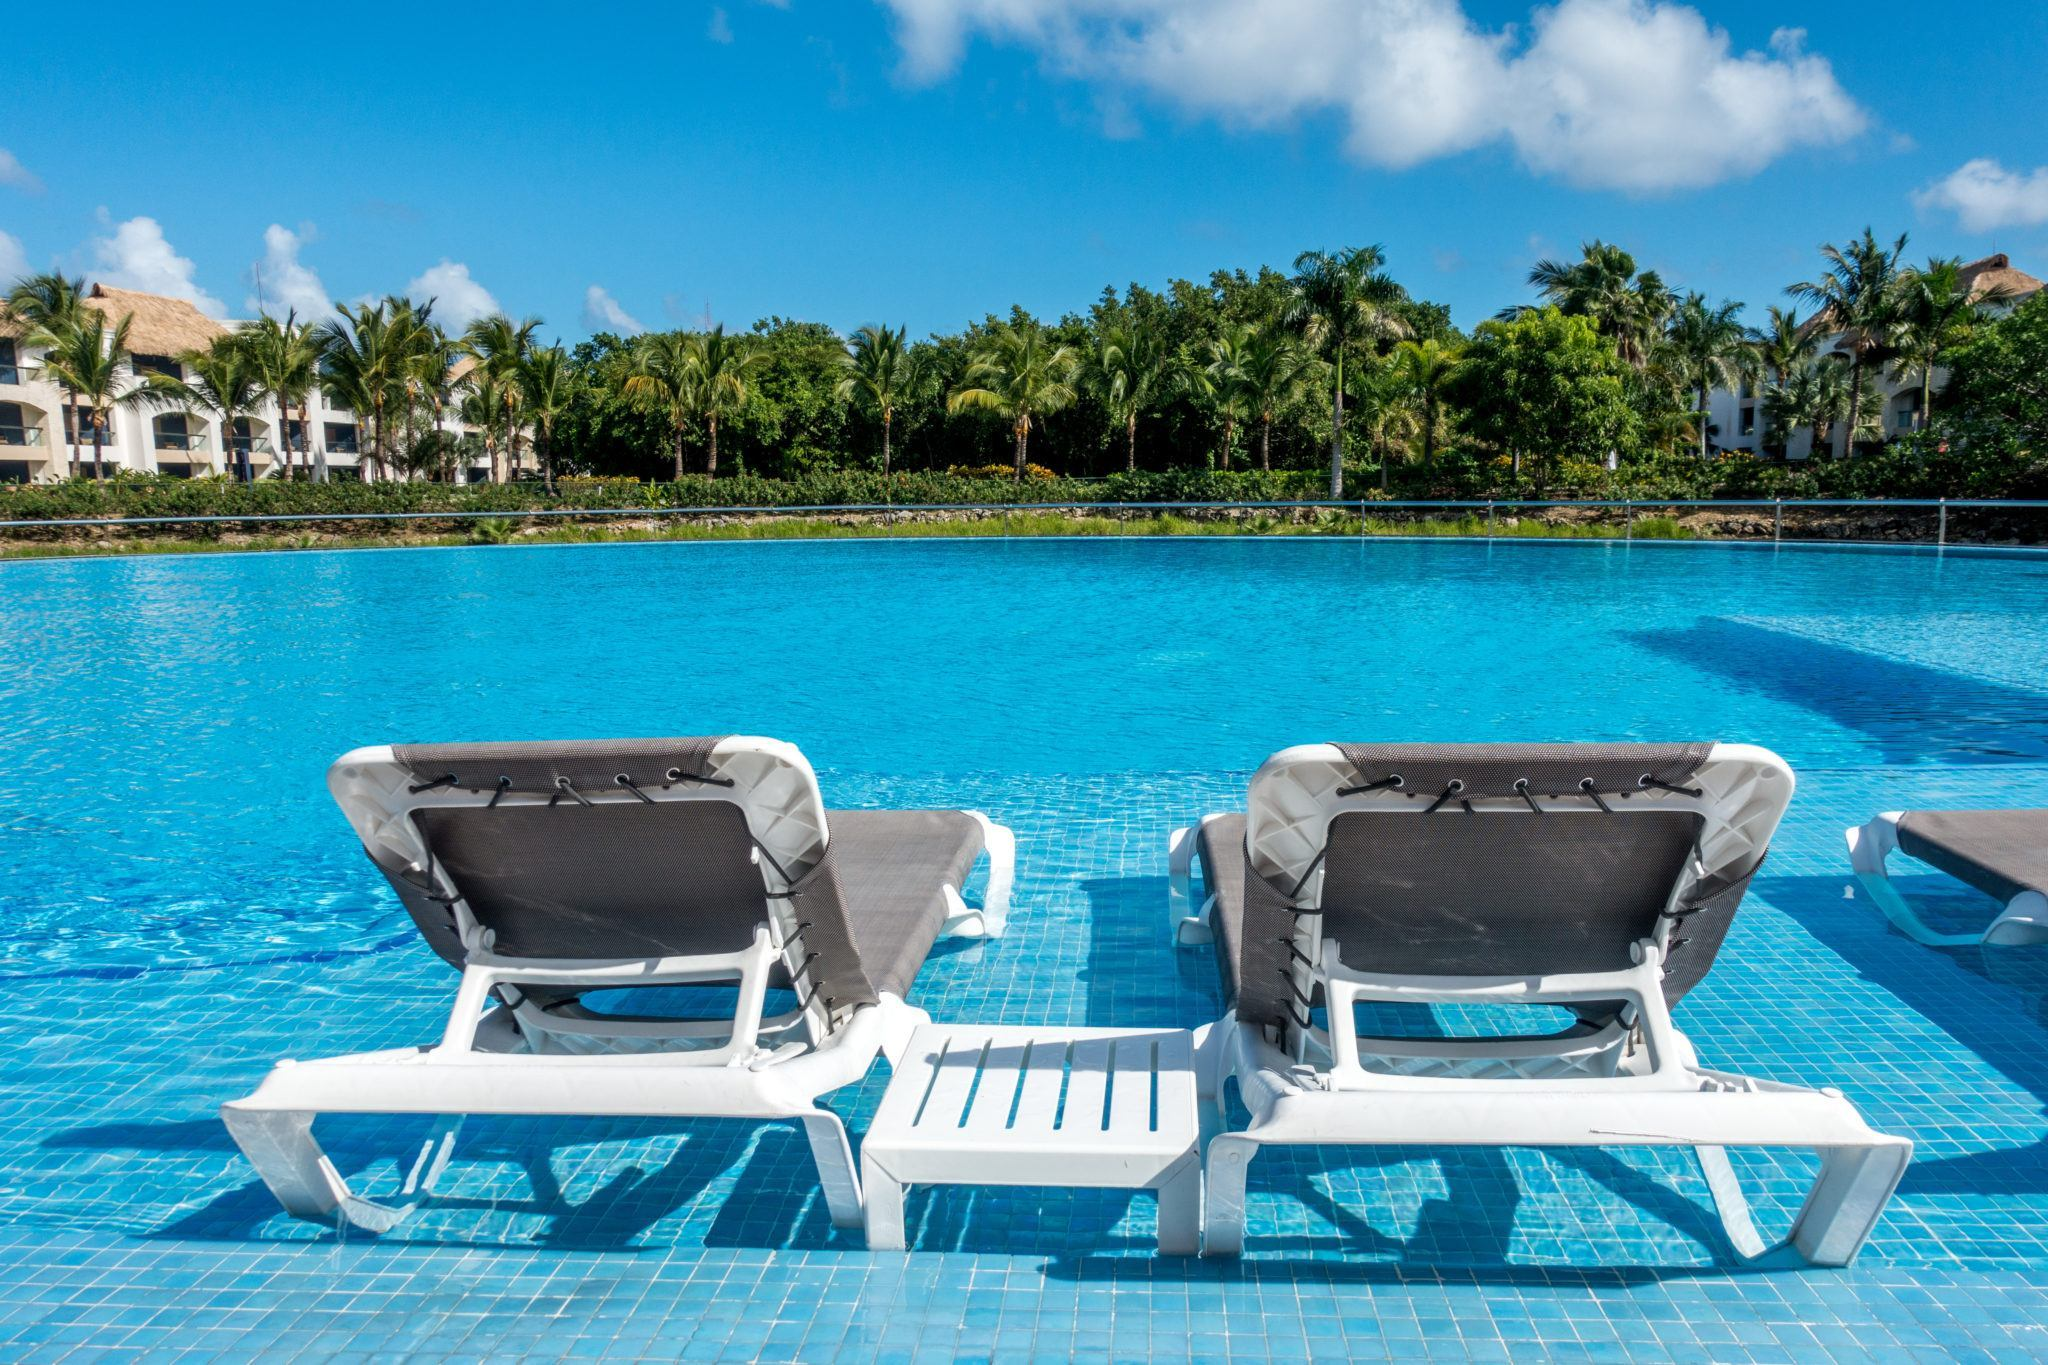 Lounge chairs at the edge of a pool